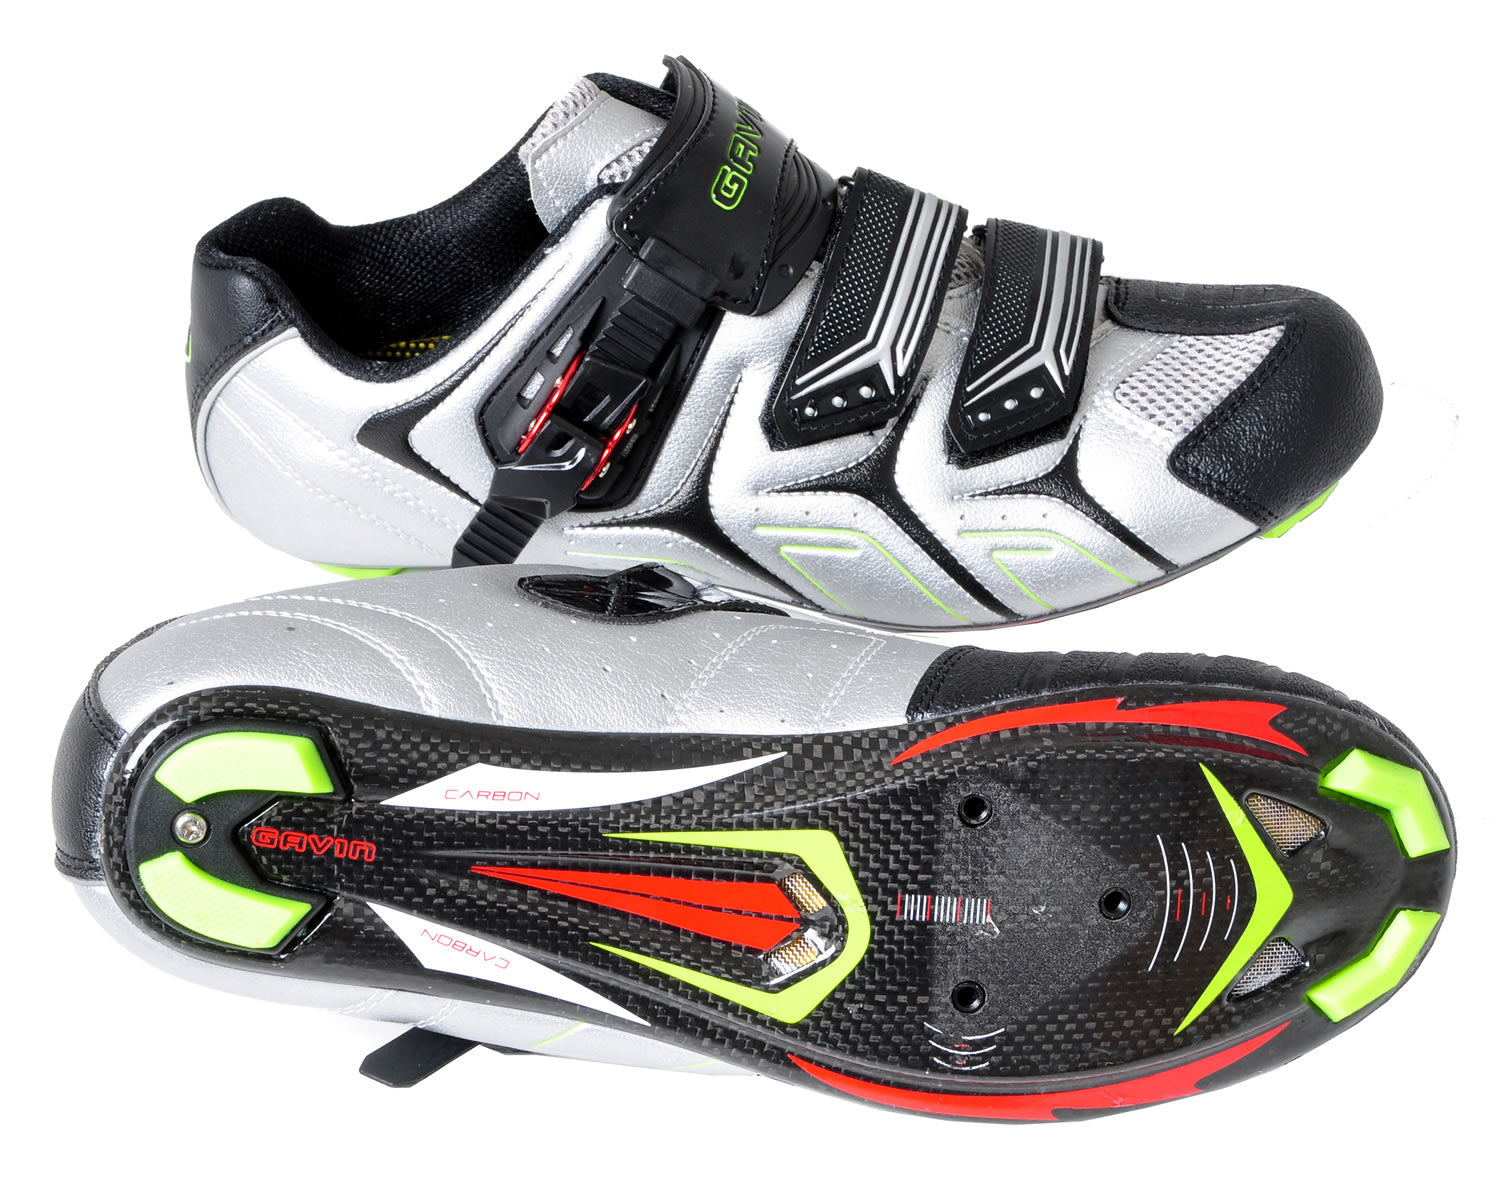 products/525-CARBON-SHOE__01.jpg_1.jpg